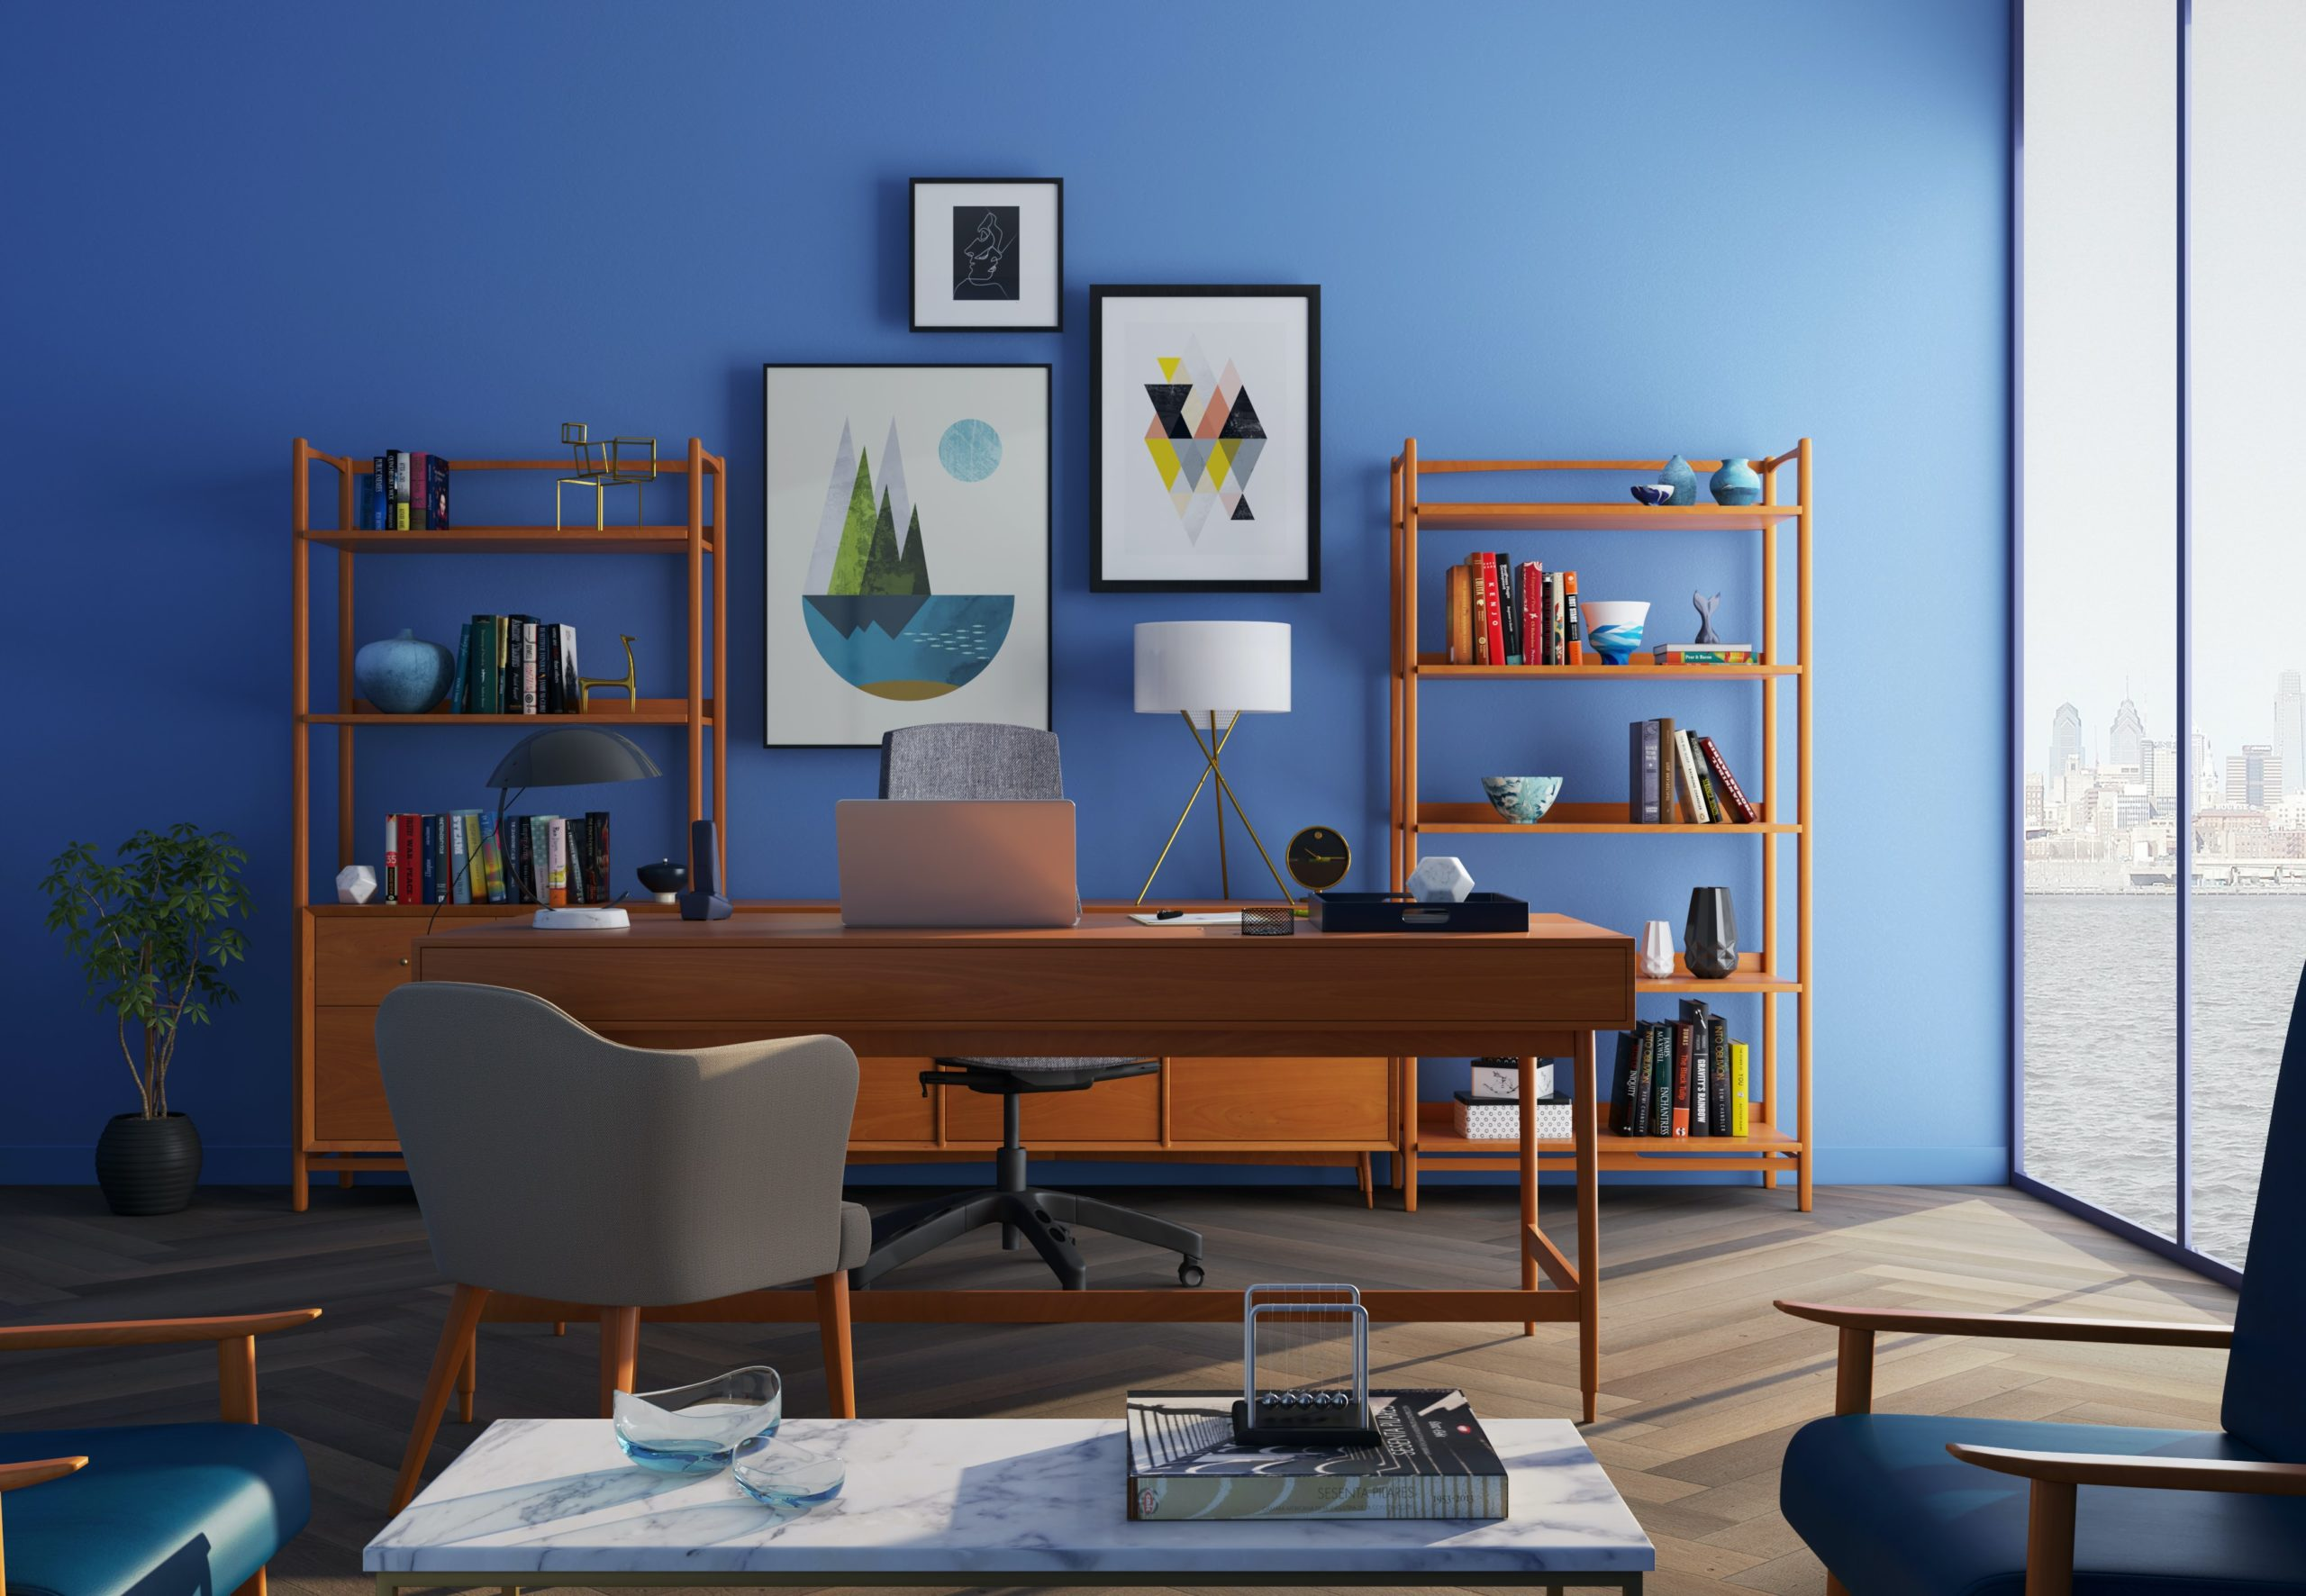 Mid century modern home office with vibrant blue accent wall